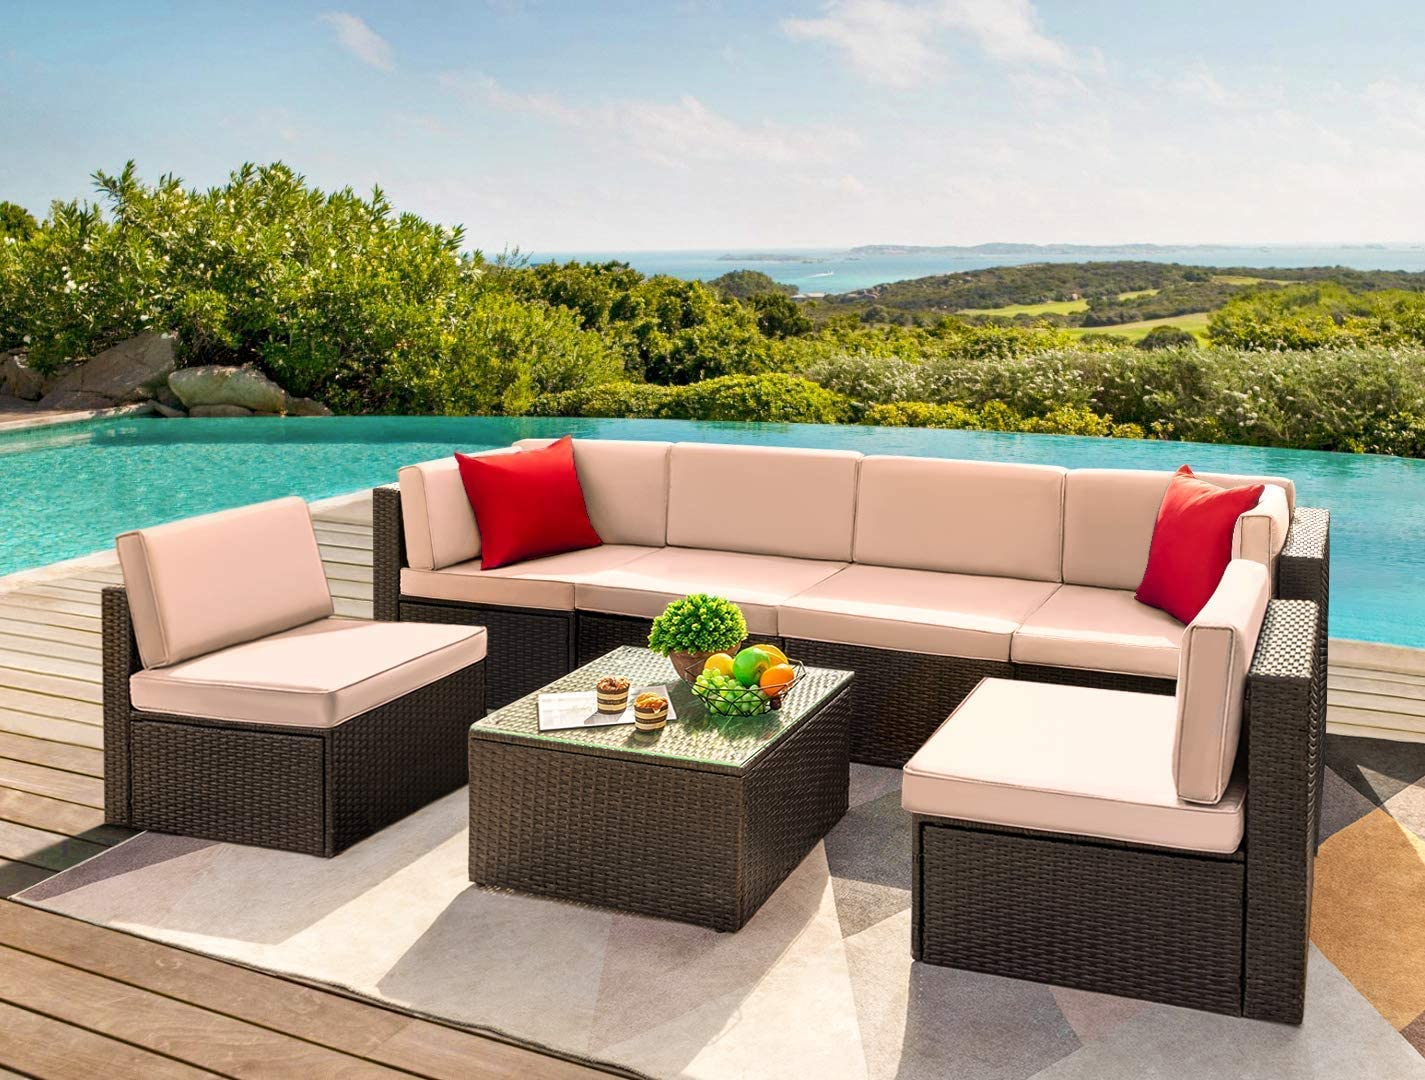 devoko 7 pieces outdoor sectional sofa patio furniture sets manual weaving wicker rattan patio conversation sets with cushion and glass table beige